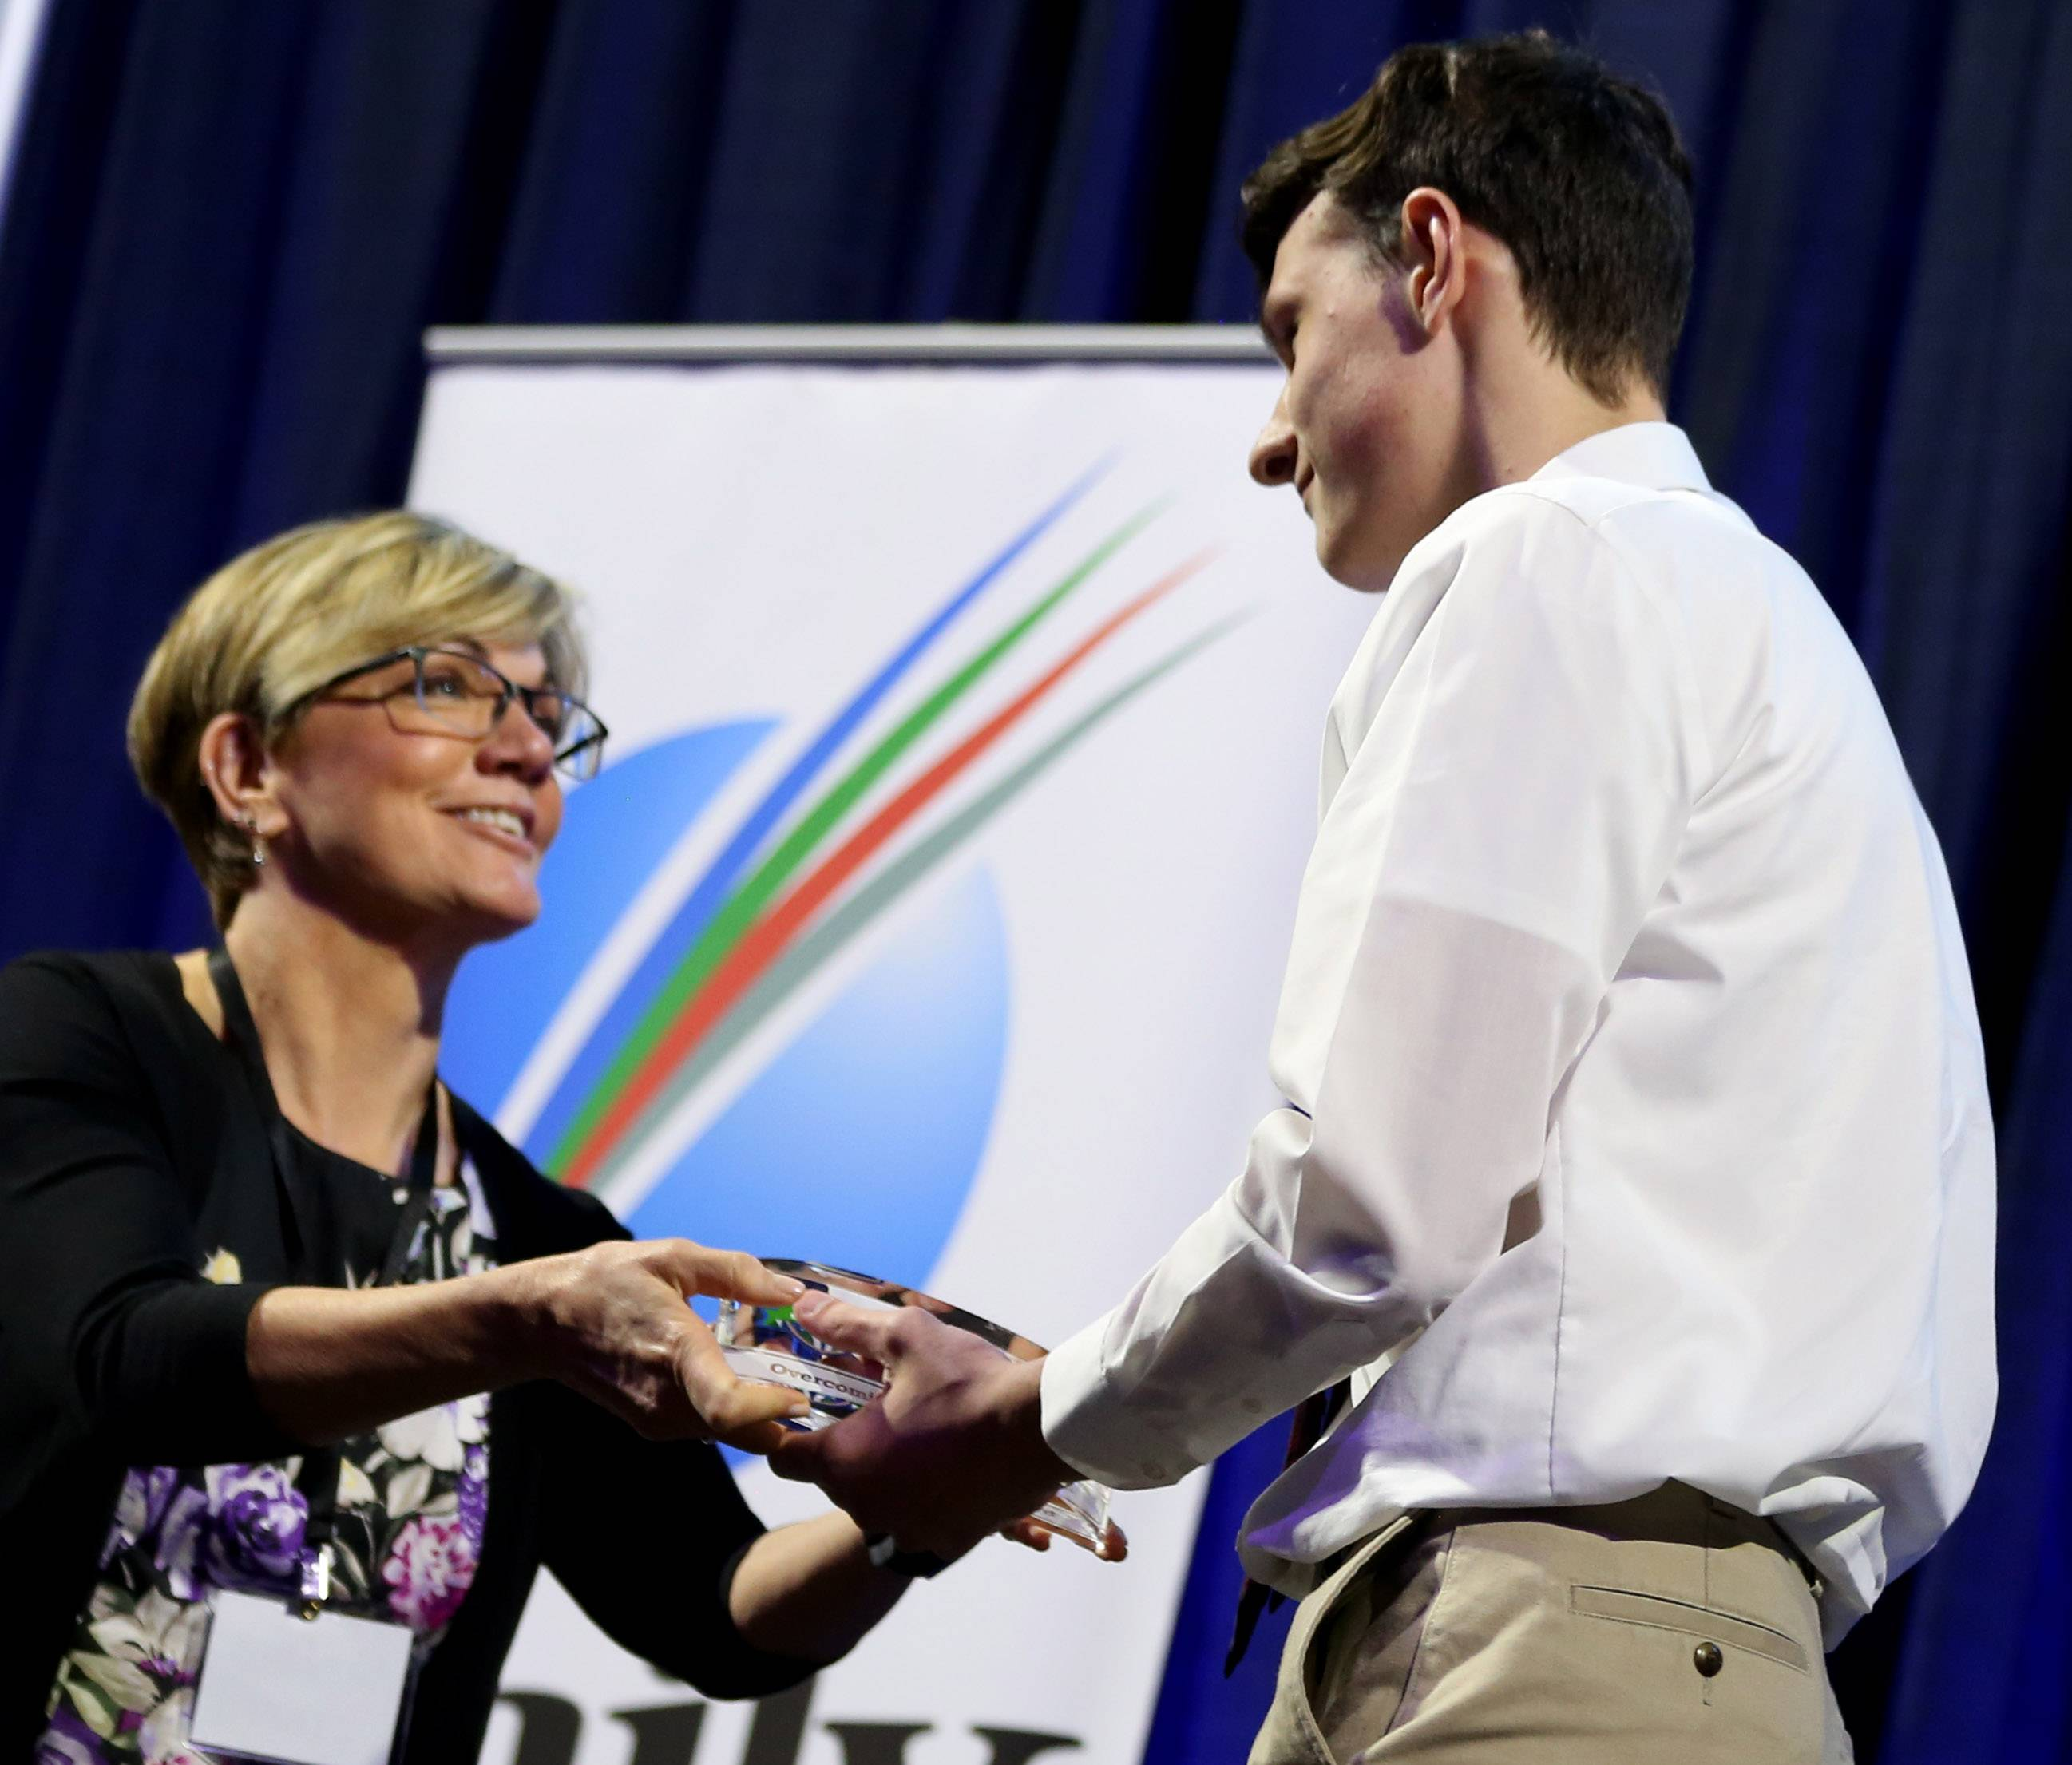 Zach Upp of Wheaton Academy receives the Overcoming Obstacles Award from Eileen Brown of the Daily Herald Media Group on Thursday night as part of the Daily Herald Prep Sports Excellence Awards at the Sears Centre in Hoffman Estates.